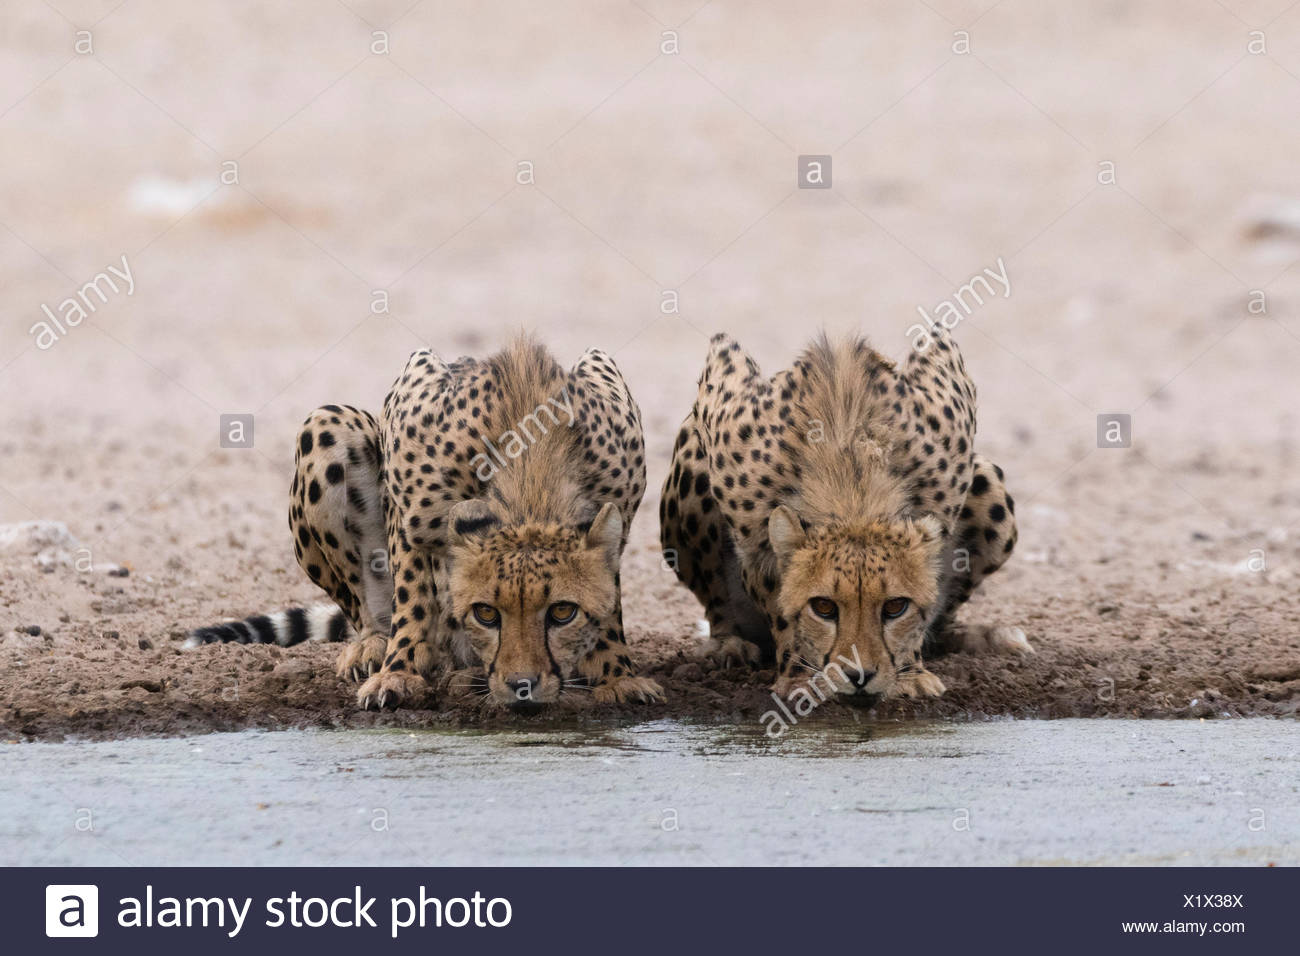 Two cheetahs, Acinonyx jubatus, drinking at a waterhole. - Stock Image